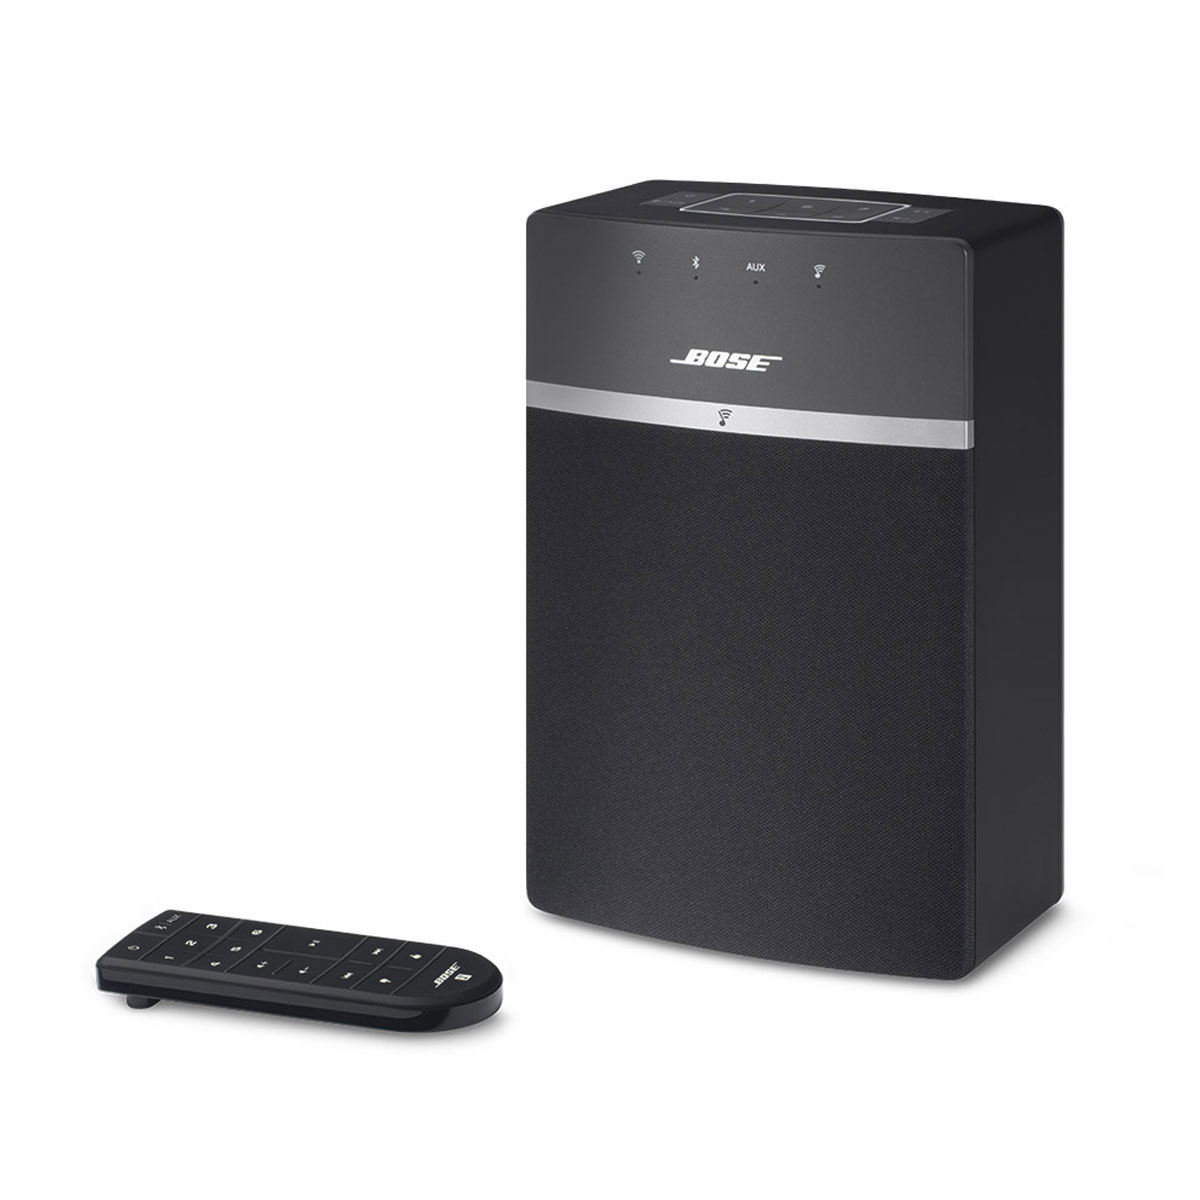 bose soundtouch 10 twin pack noir dock enceinte bluetooth bose sur. Black Bedroom Furniture Sets. Home Design Ideas